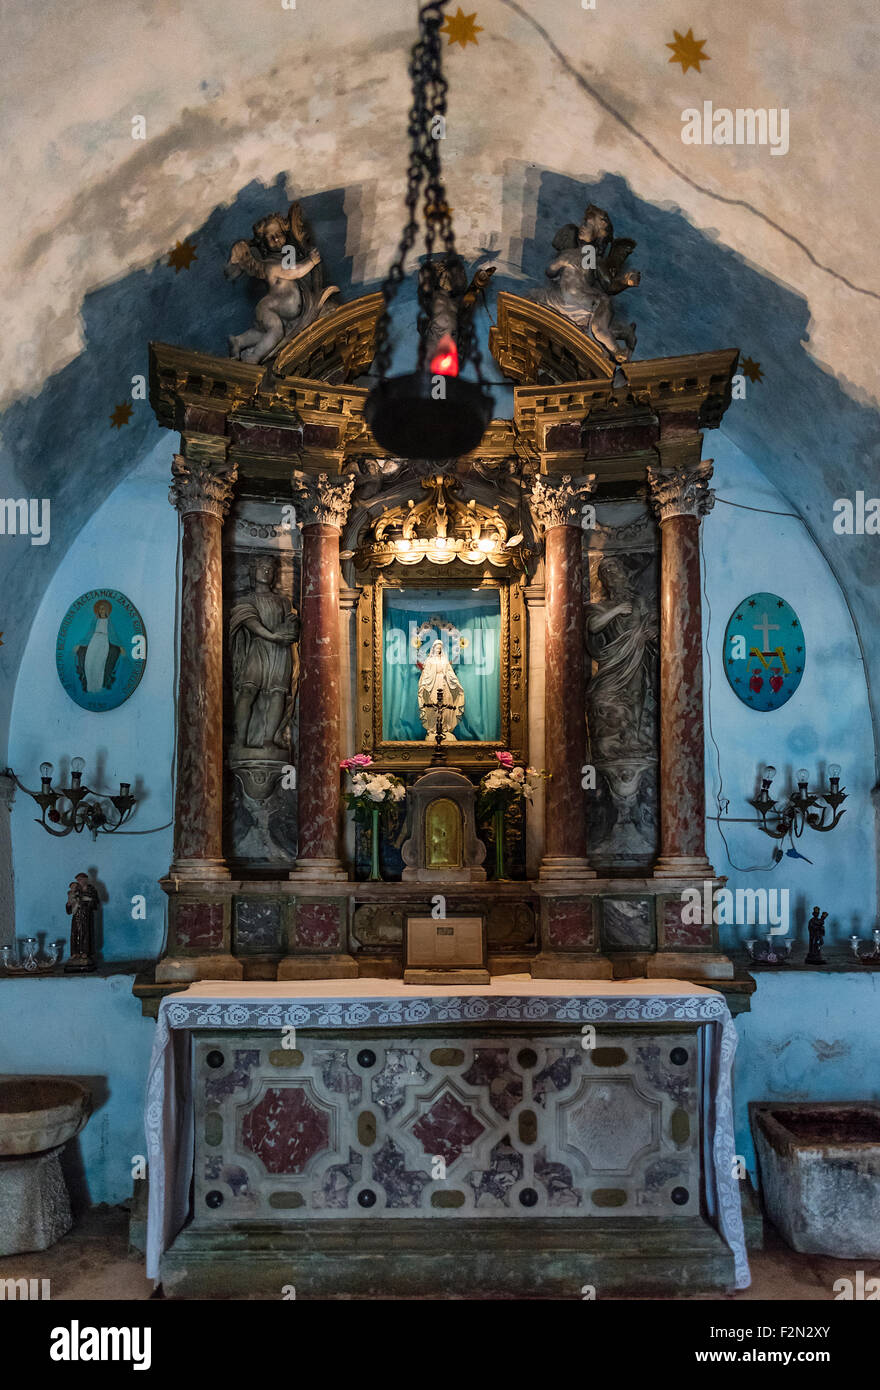 Interior alter, Our Lady of Remedy, Kotor, Montenegro - Stock Image